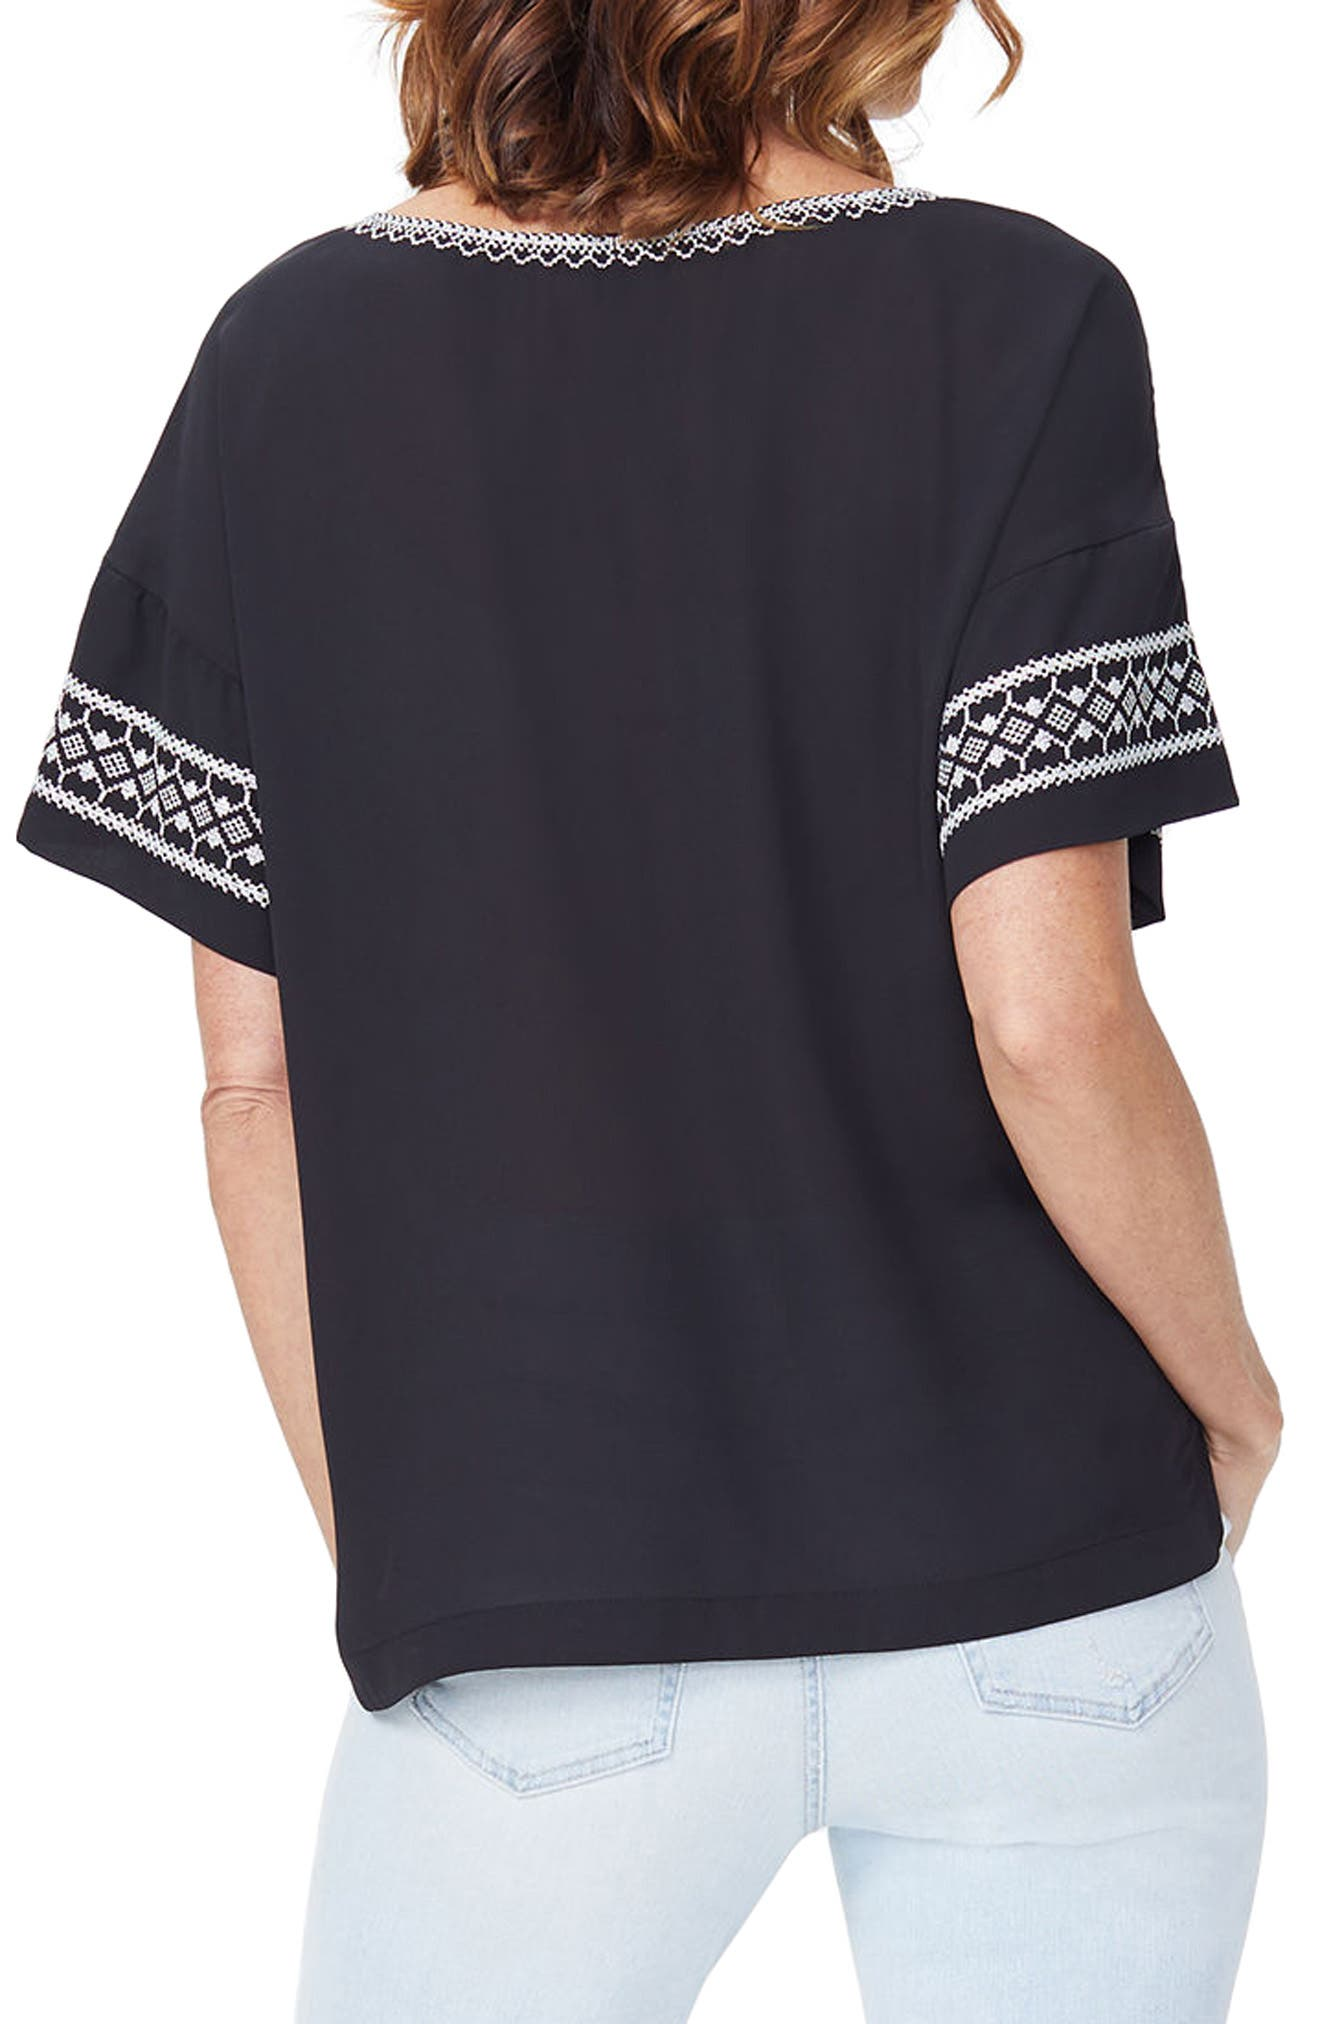 Embroidered Tee,                         Main,                         color, 001